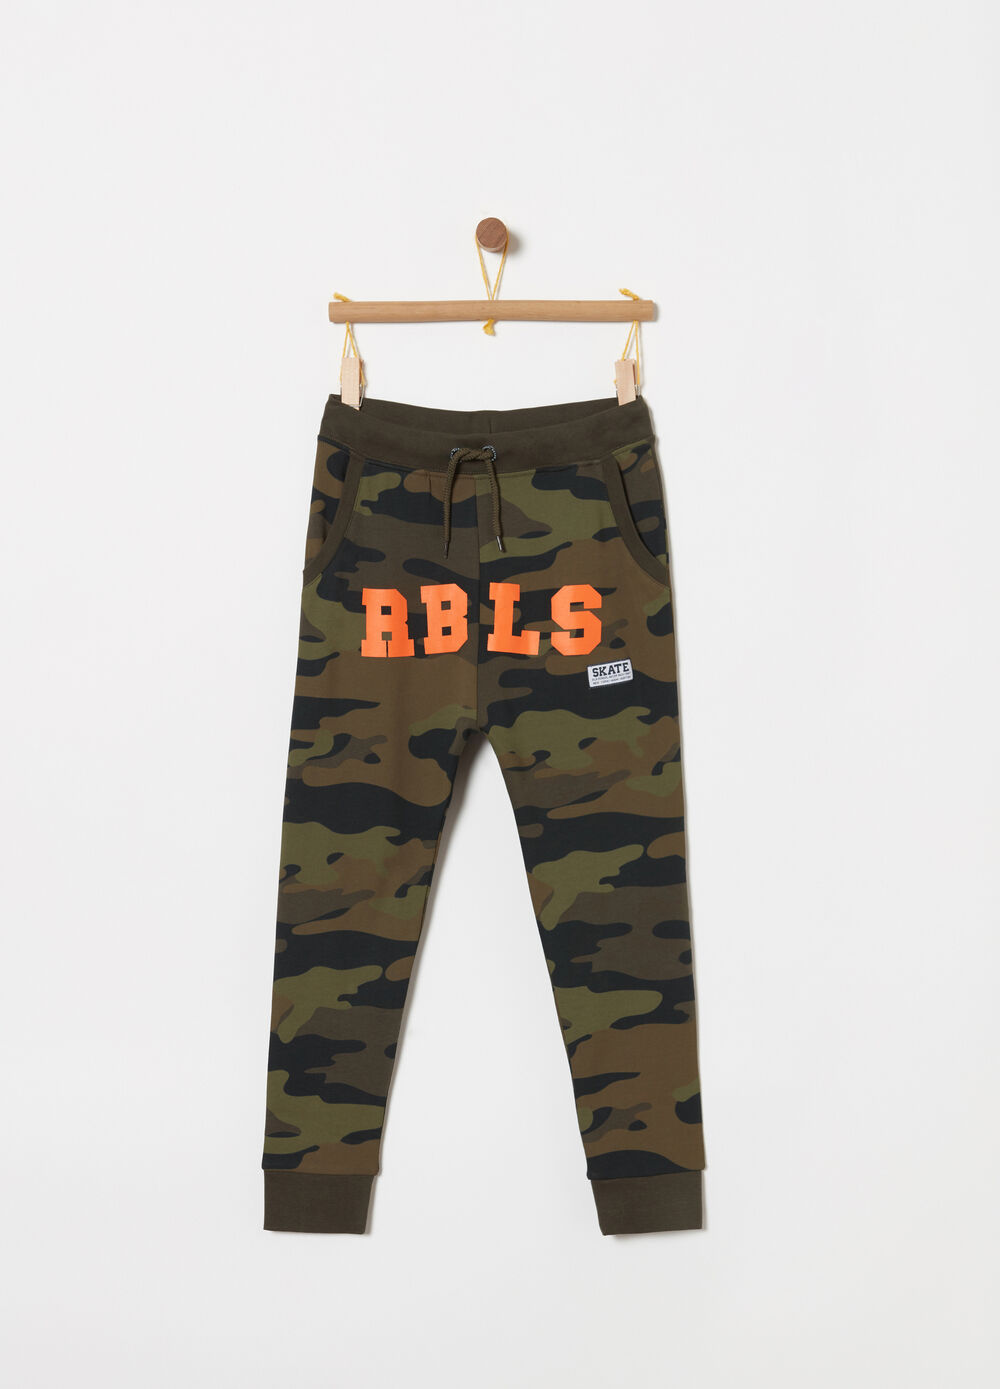 French Terry trousers with camouflage print